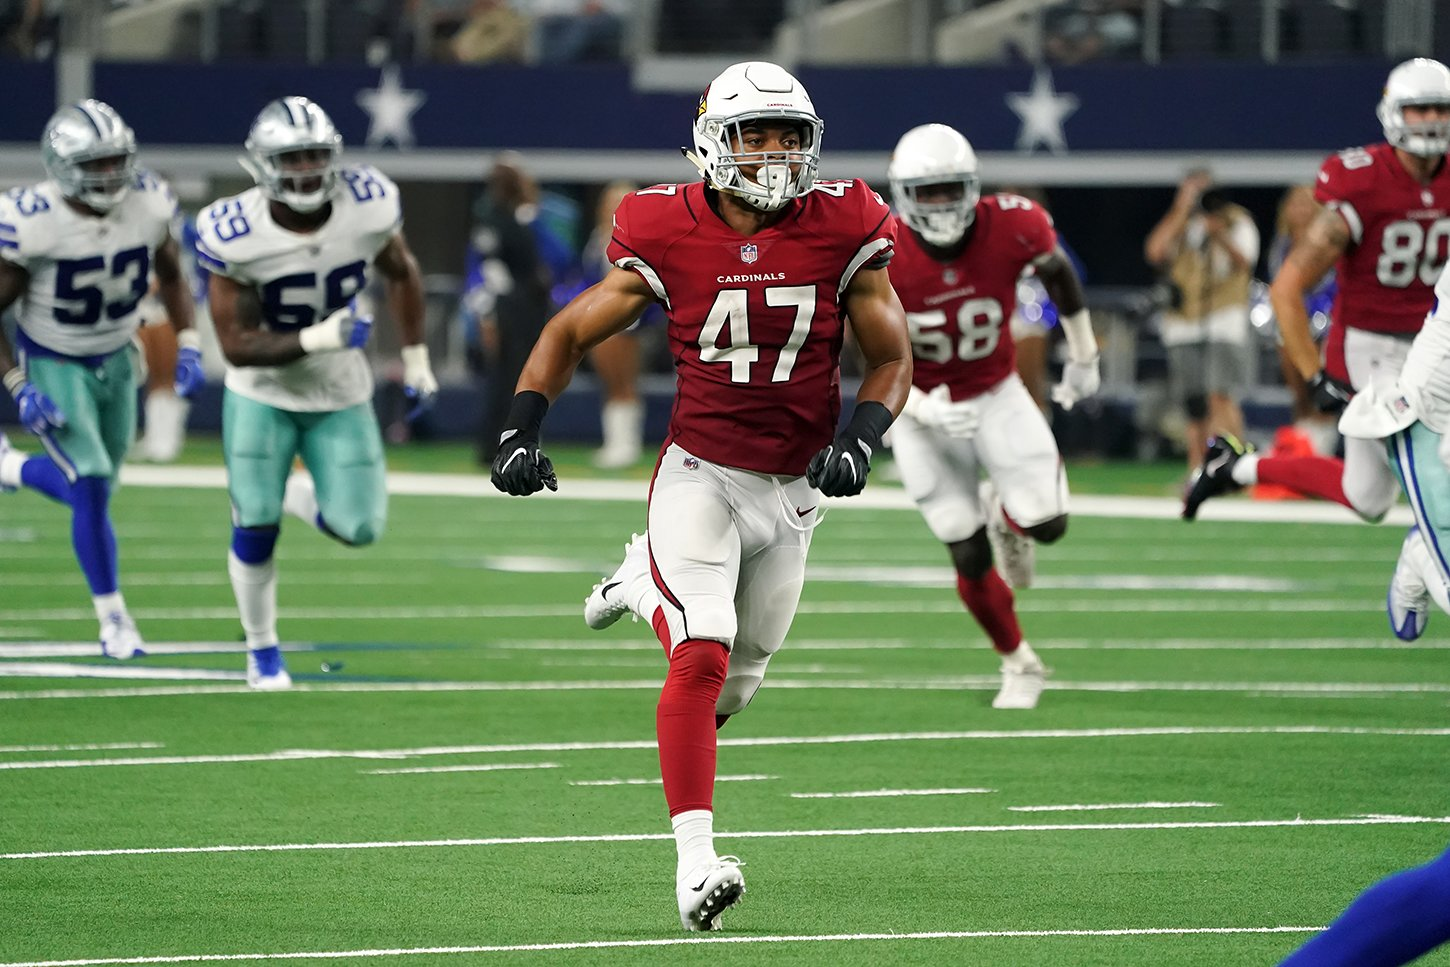 Displaying special athletic talent in August was Zeke Turner, who made the Arizona Cardinals football roster as an undrafted free agent.